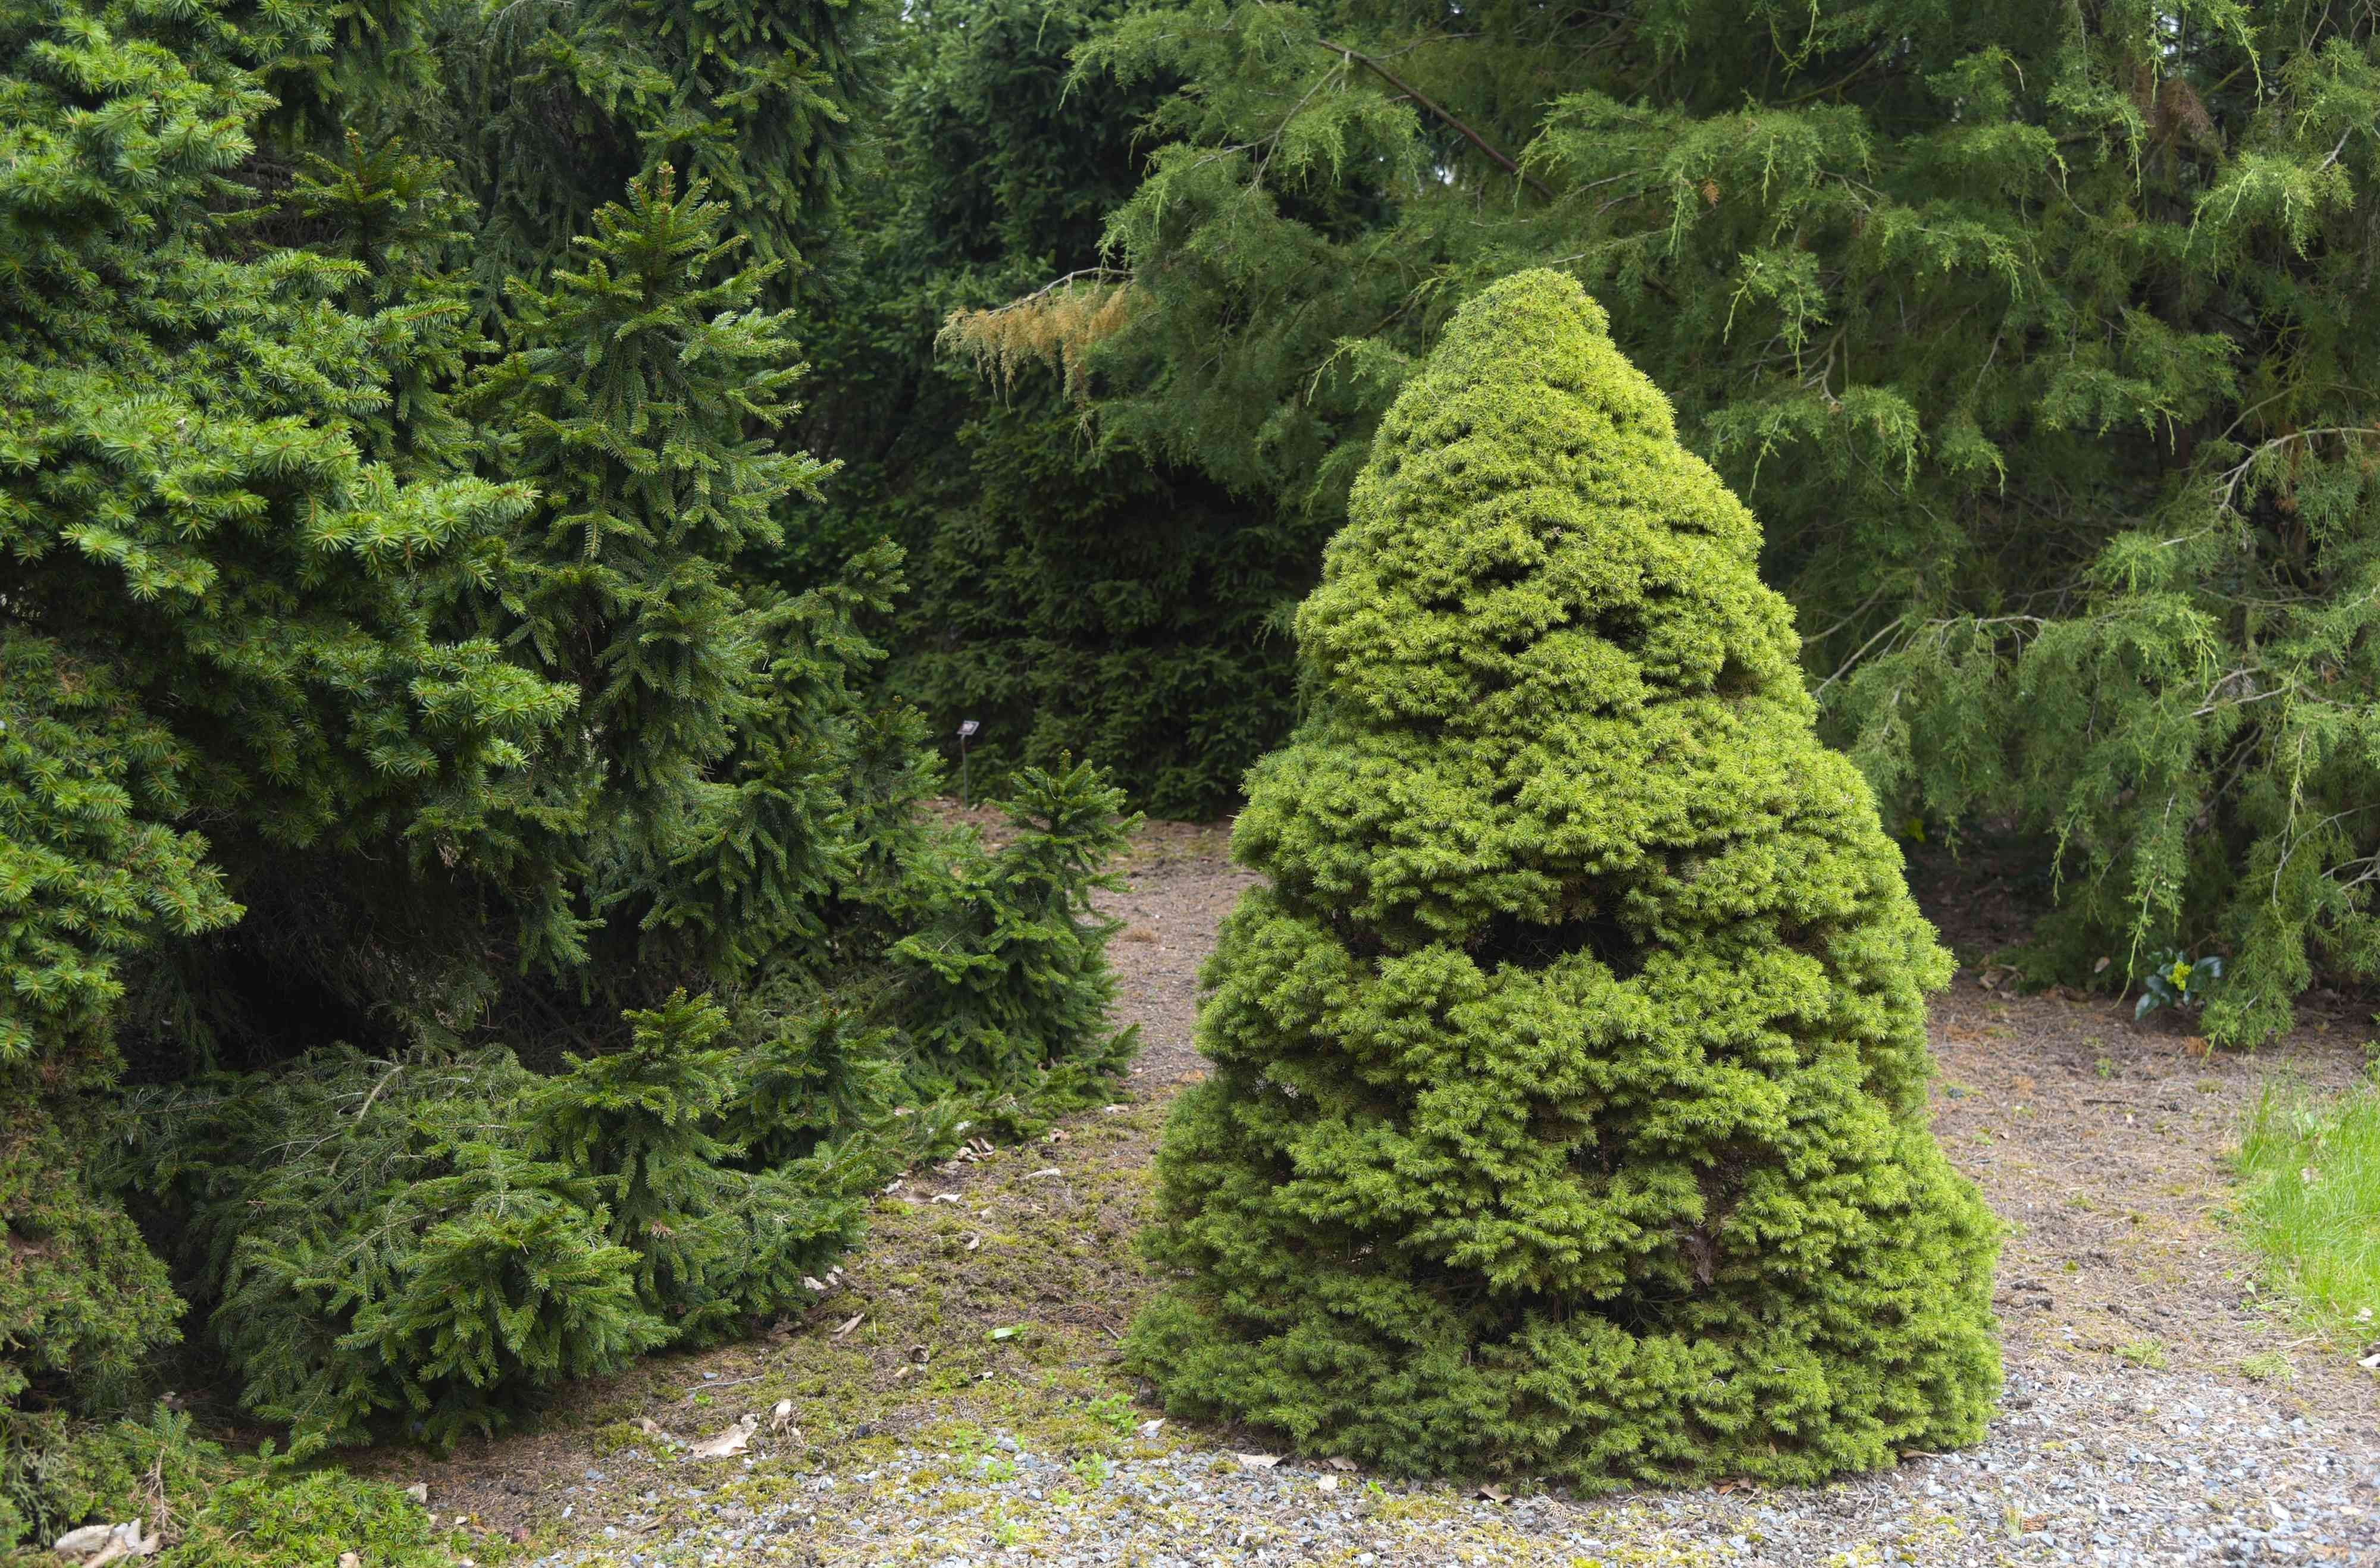 Dwarf Alberta tree on gravel ground in front of other evergreen trees